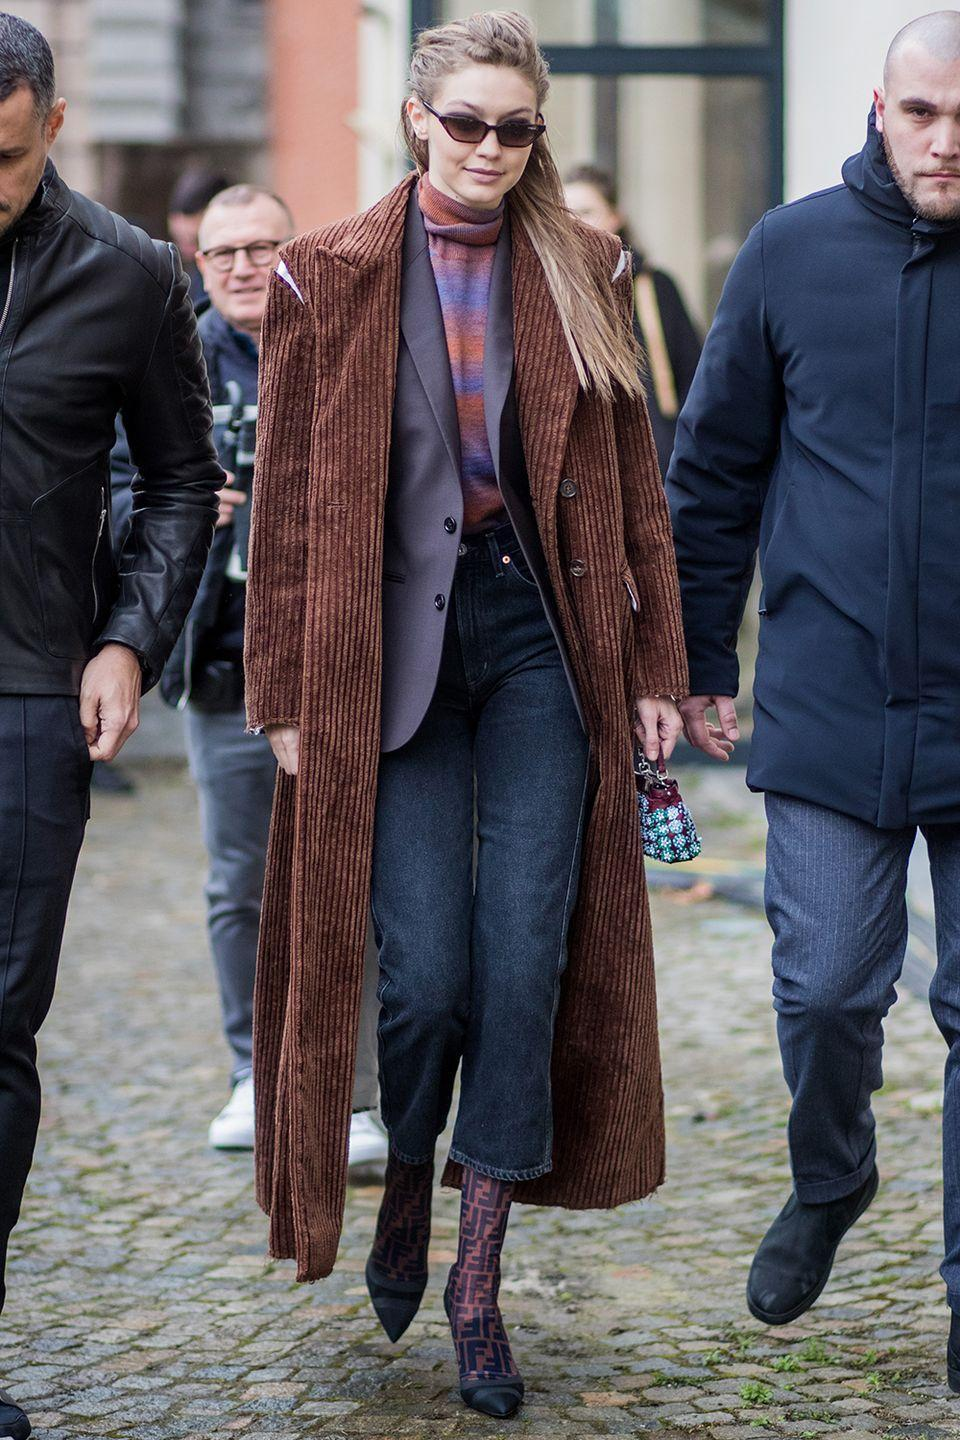 <p>In a Christian Dada corduroy double-breasted overcoat with subtle split shoulders detail, over a deep plum Paul & Joeblazer, over a red and purple striped turtleneck, finished with Fendi mesh monogram boots tucked under cropped jeans, a tiny micro purse, and small cat-eye sunglasses while out in Milan.</p>